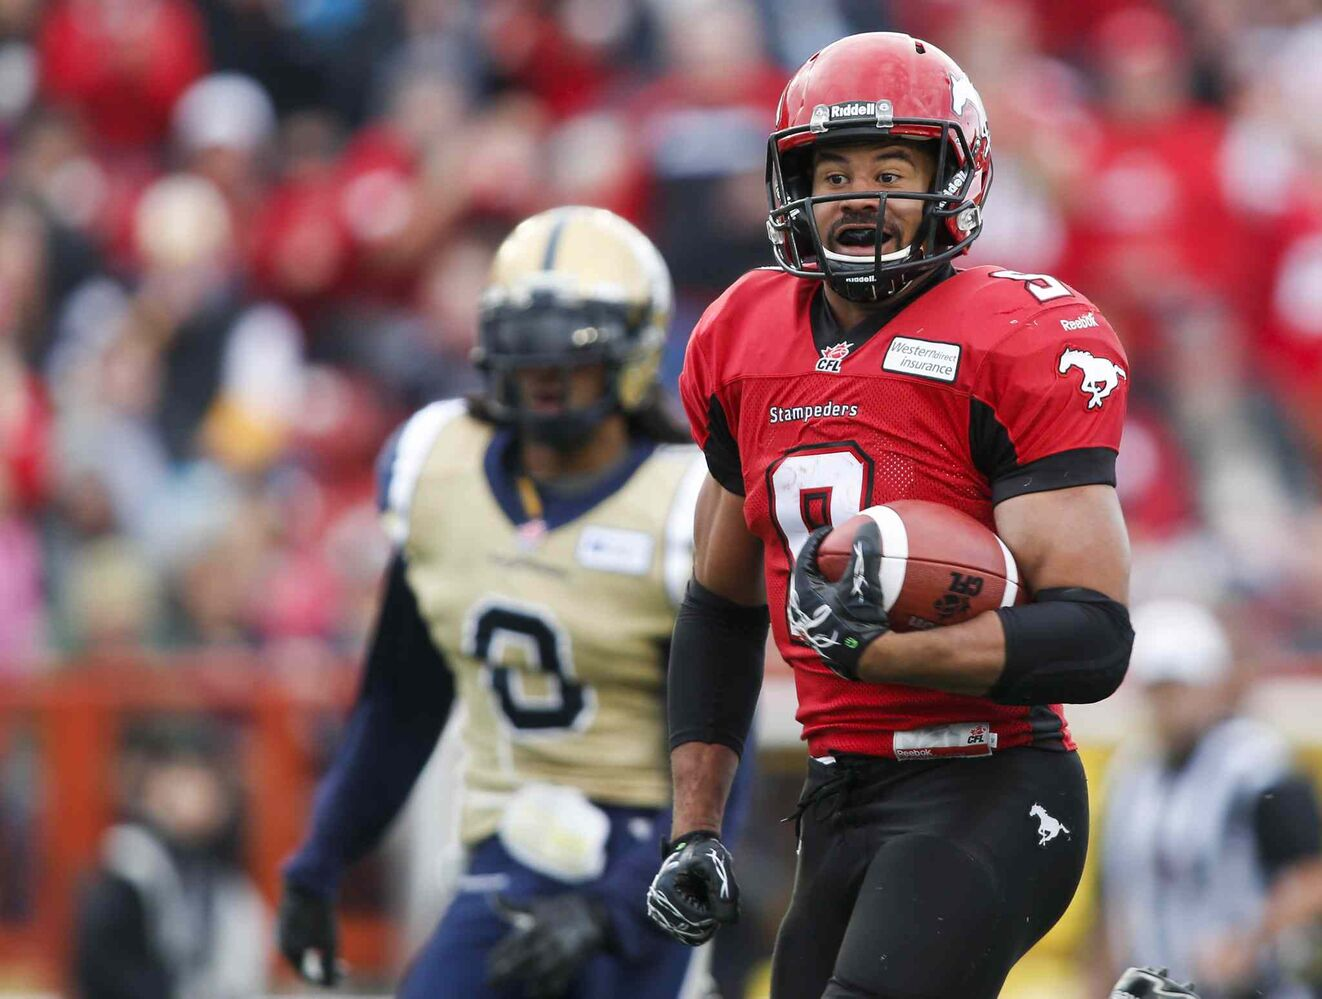 Winnipeg Blue Bombers' Johnny Sears Jr. looks on as Calgary Stampeders' Jon Cornish smiles after scoring a touchdown during the first half.